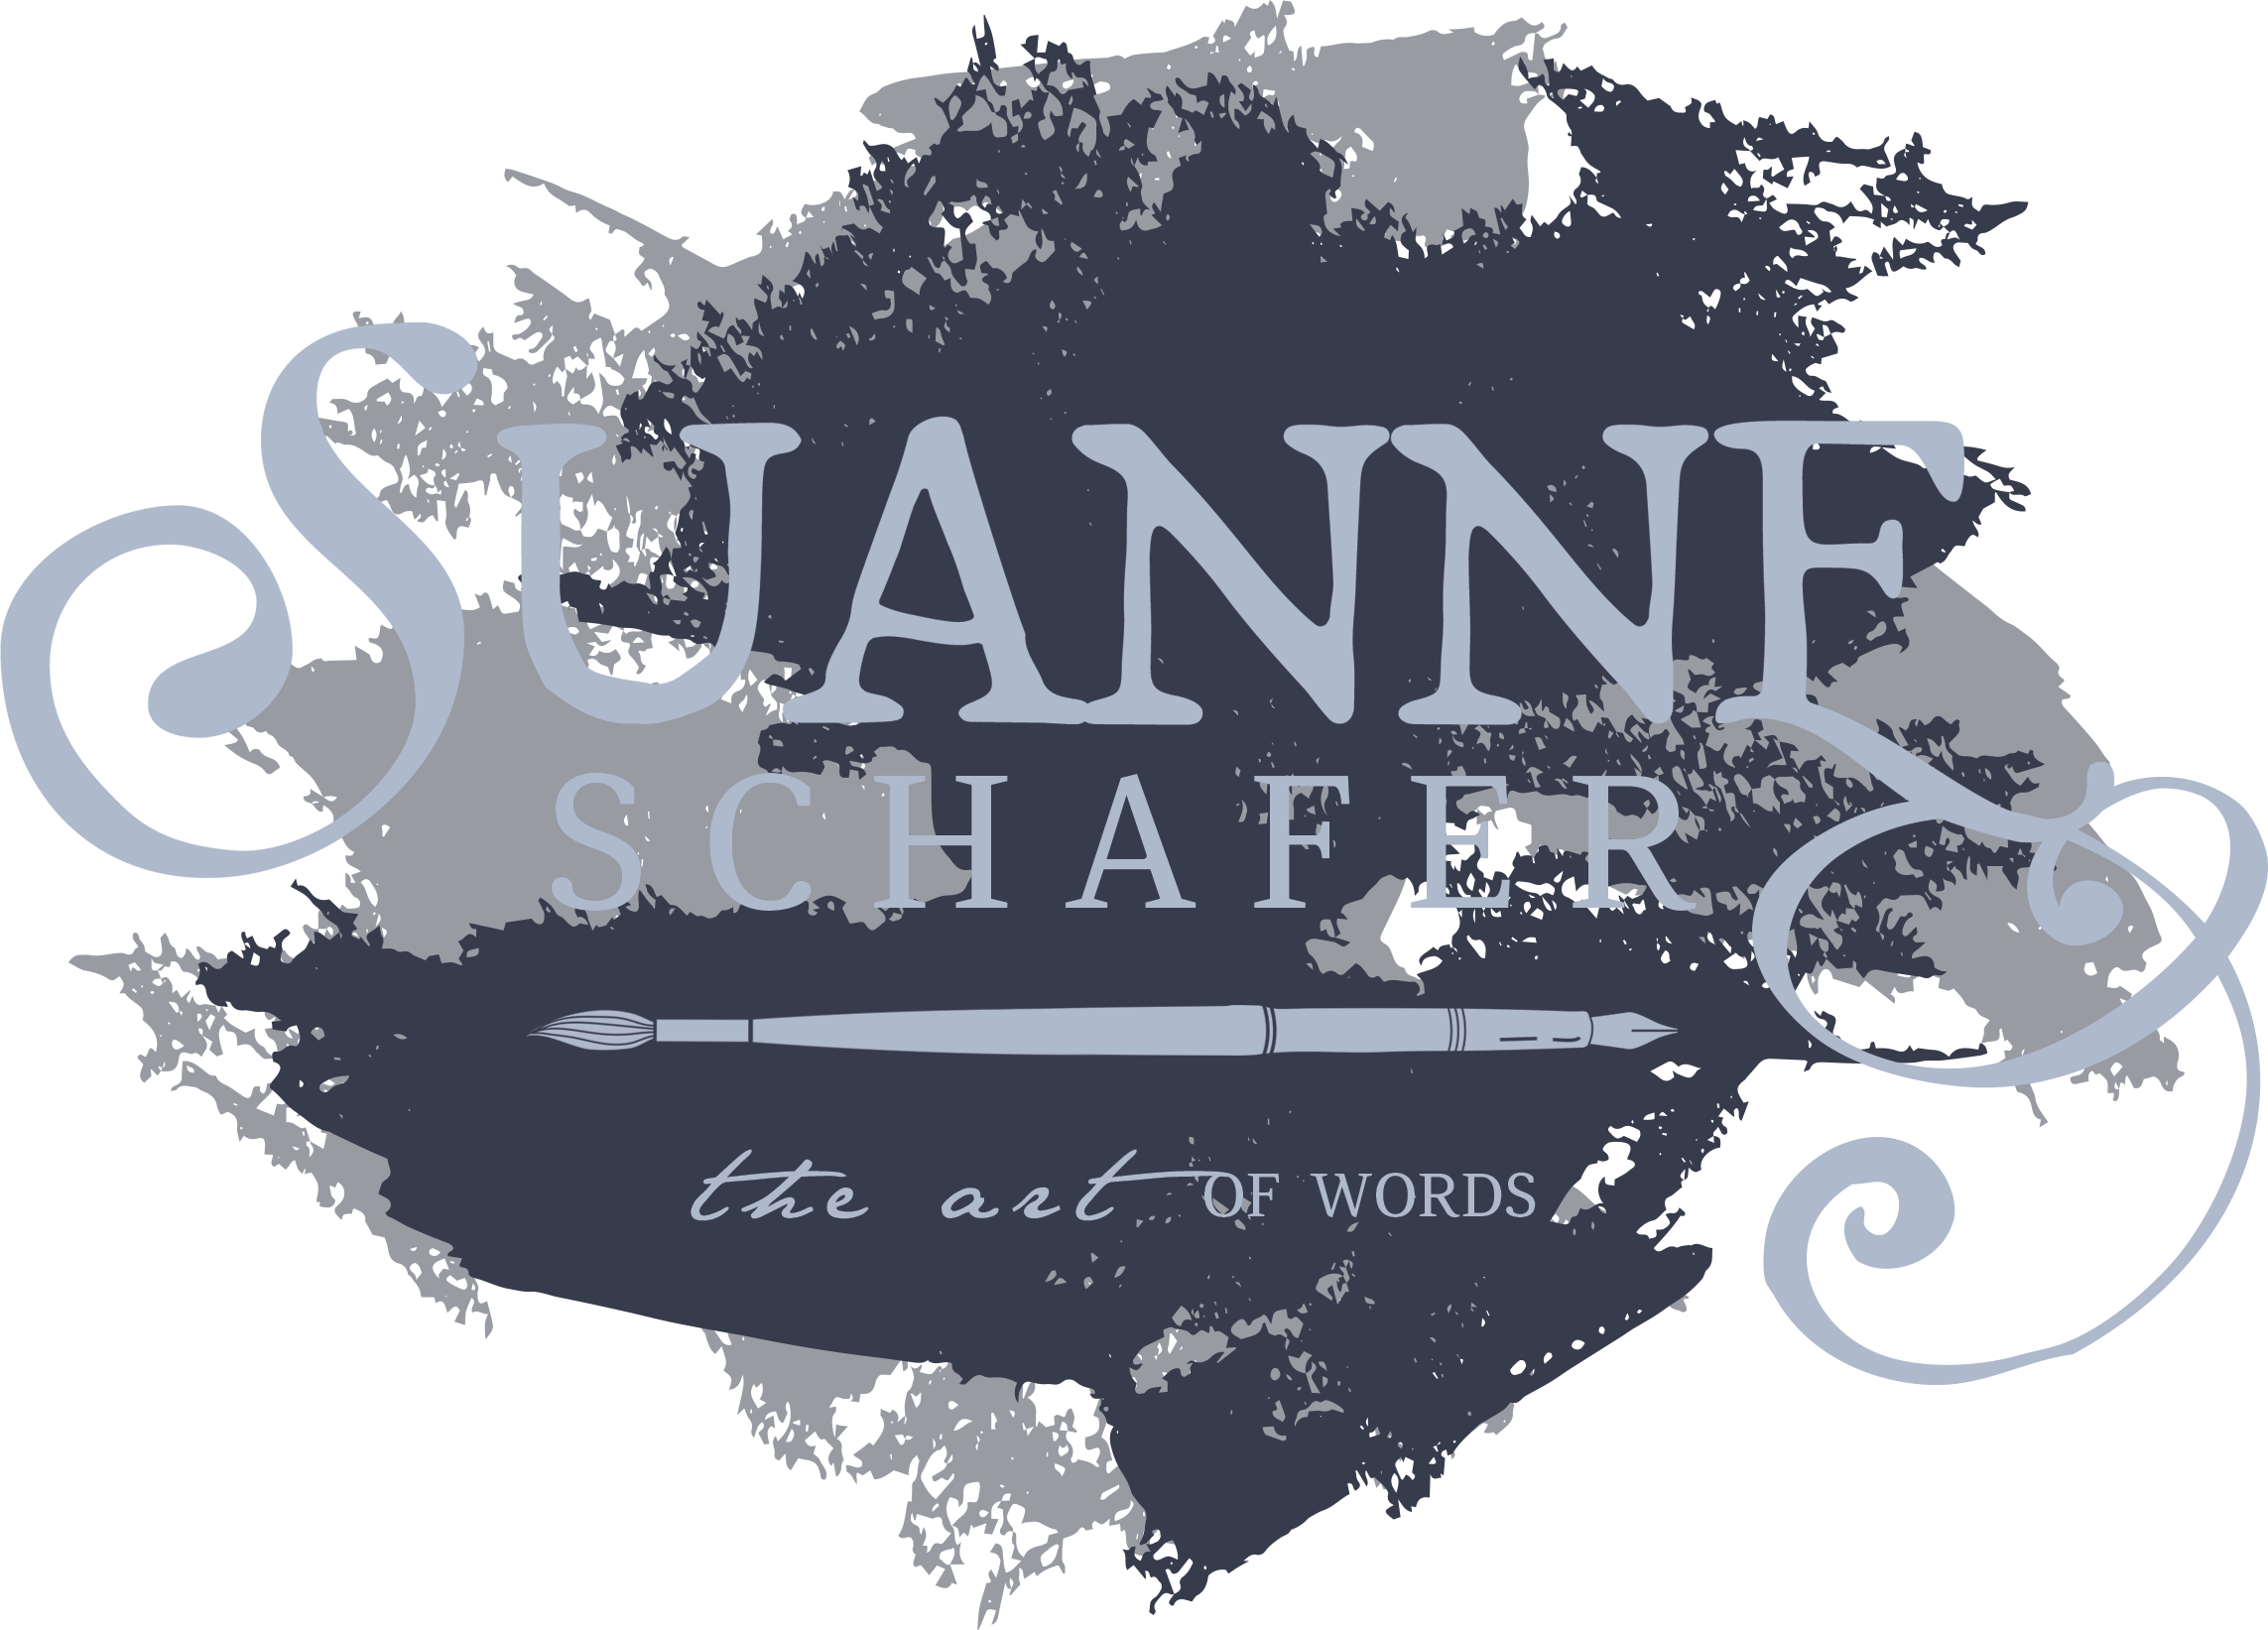 Visit SuanneSchaferAuthor.com for Author News, Reviews & Views!